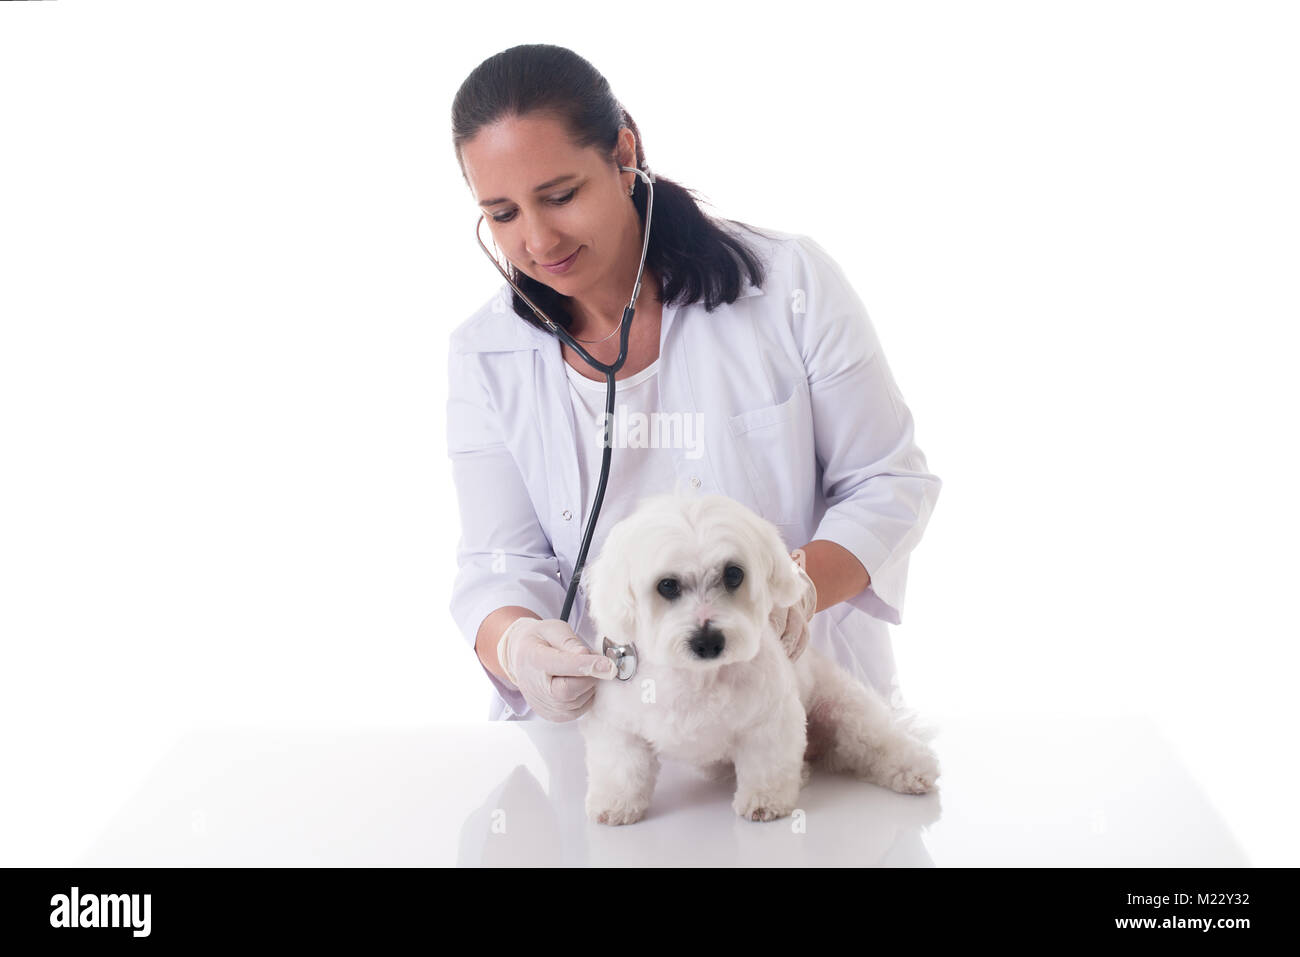 veterinarian examining  a cute maltese dog with a stethoscope, isolated over white background - Stock Image